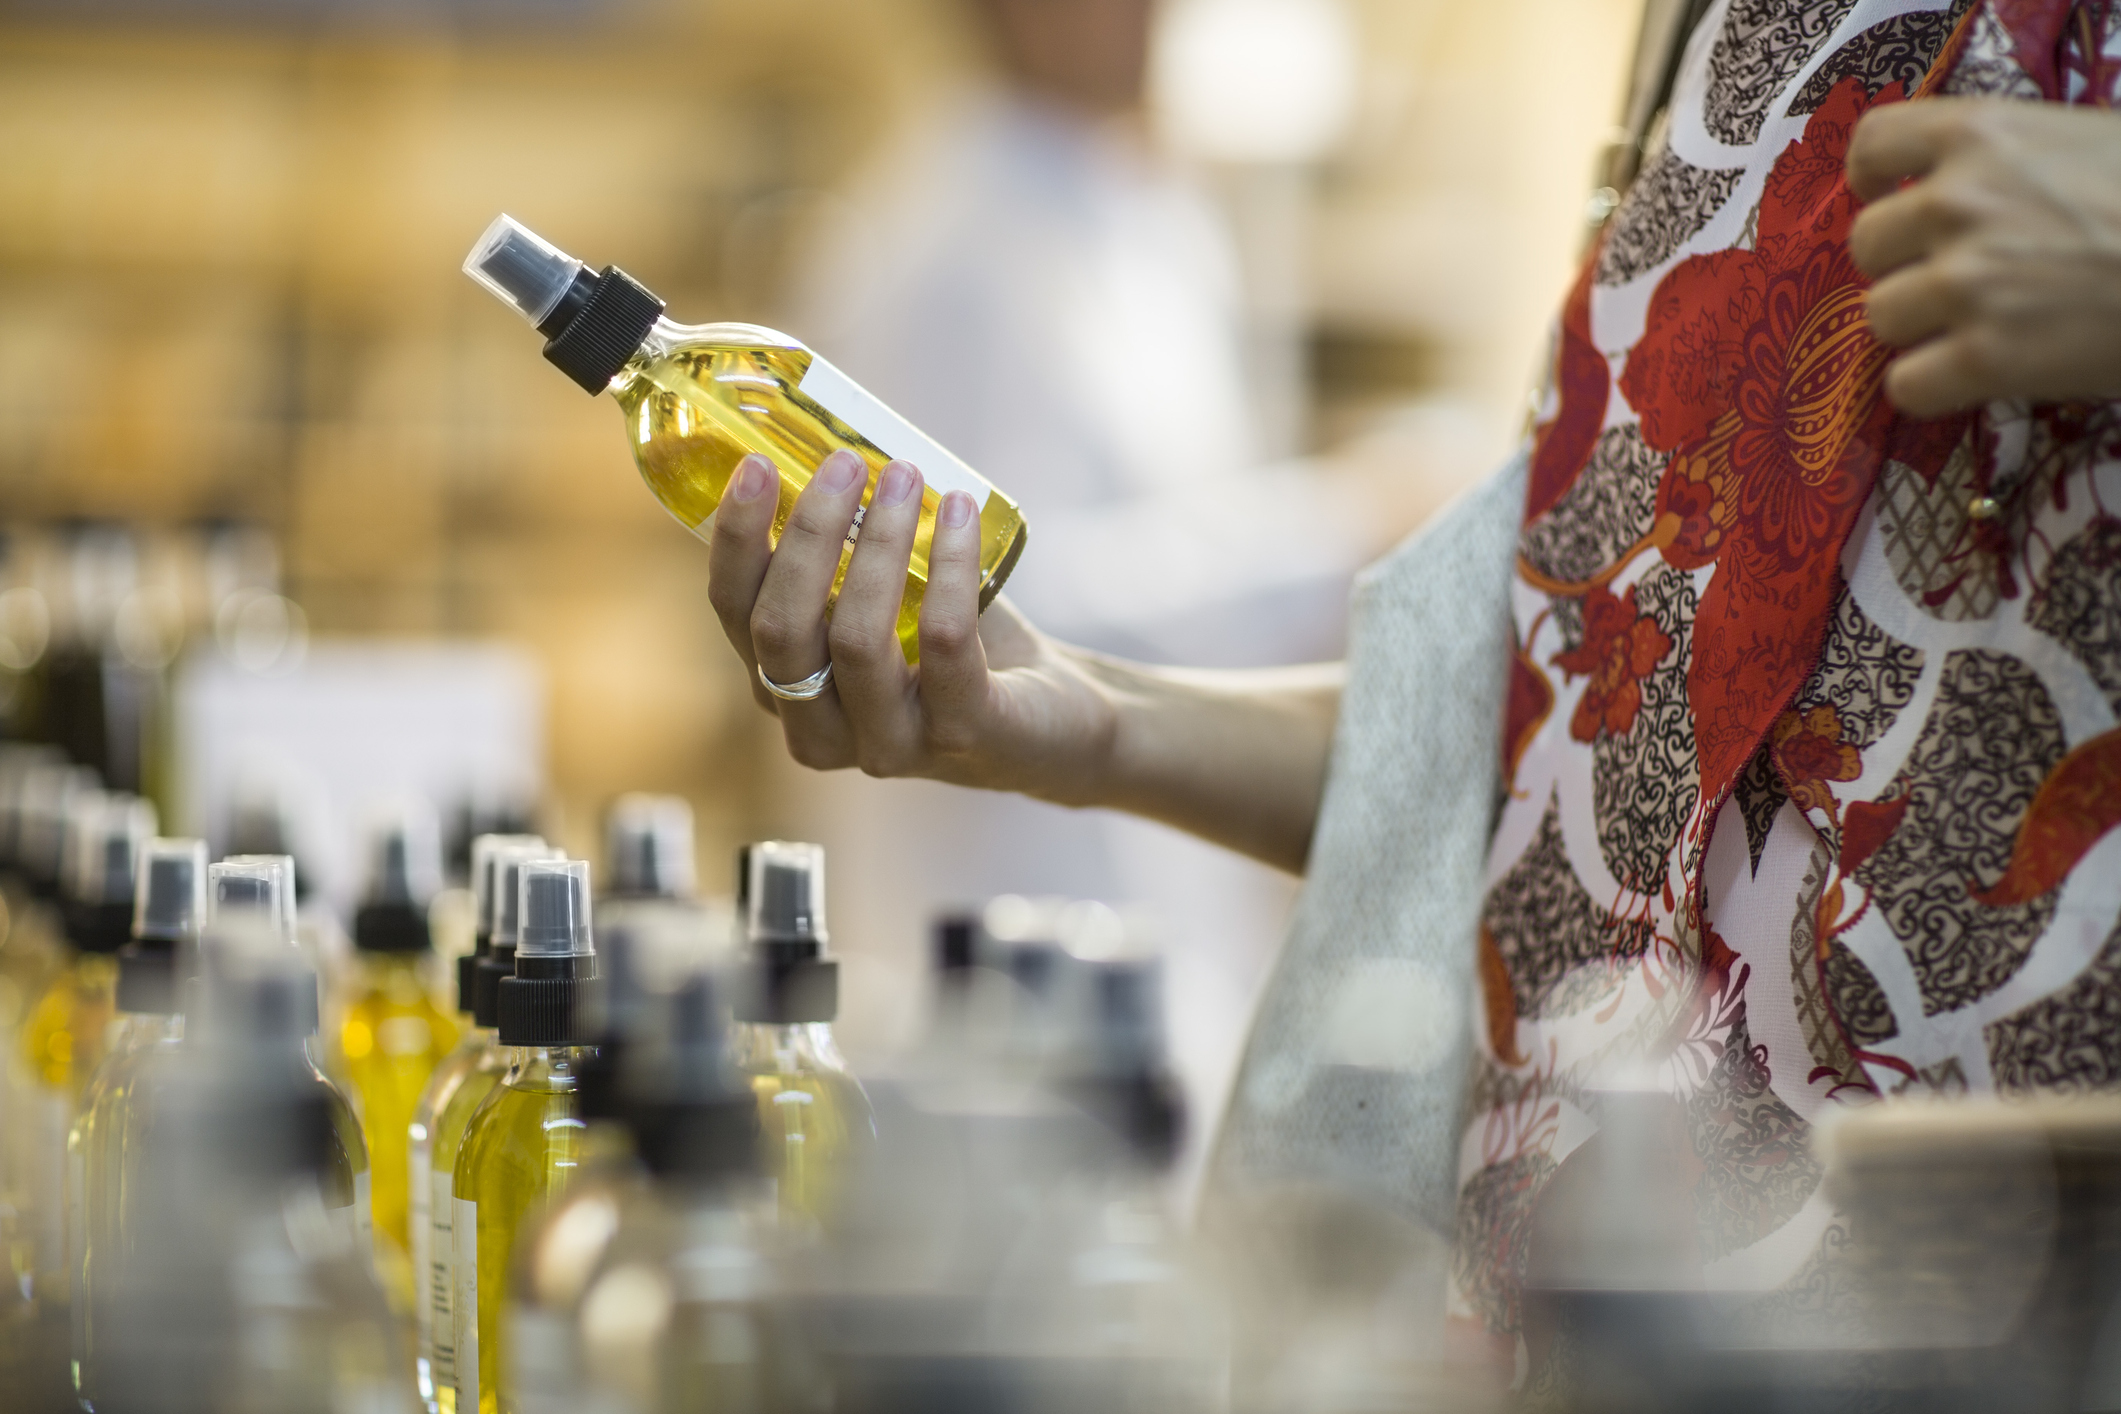 A woman holding a bottle of perfume in a store